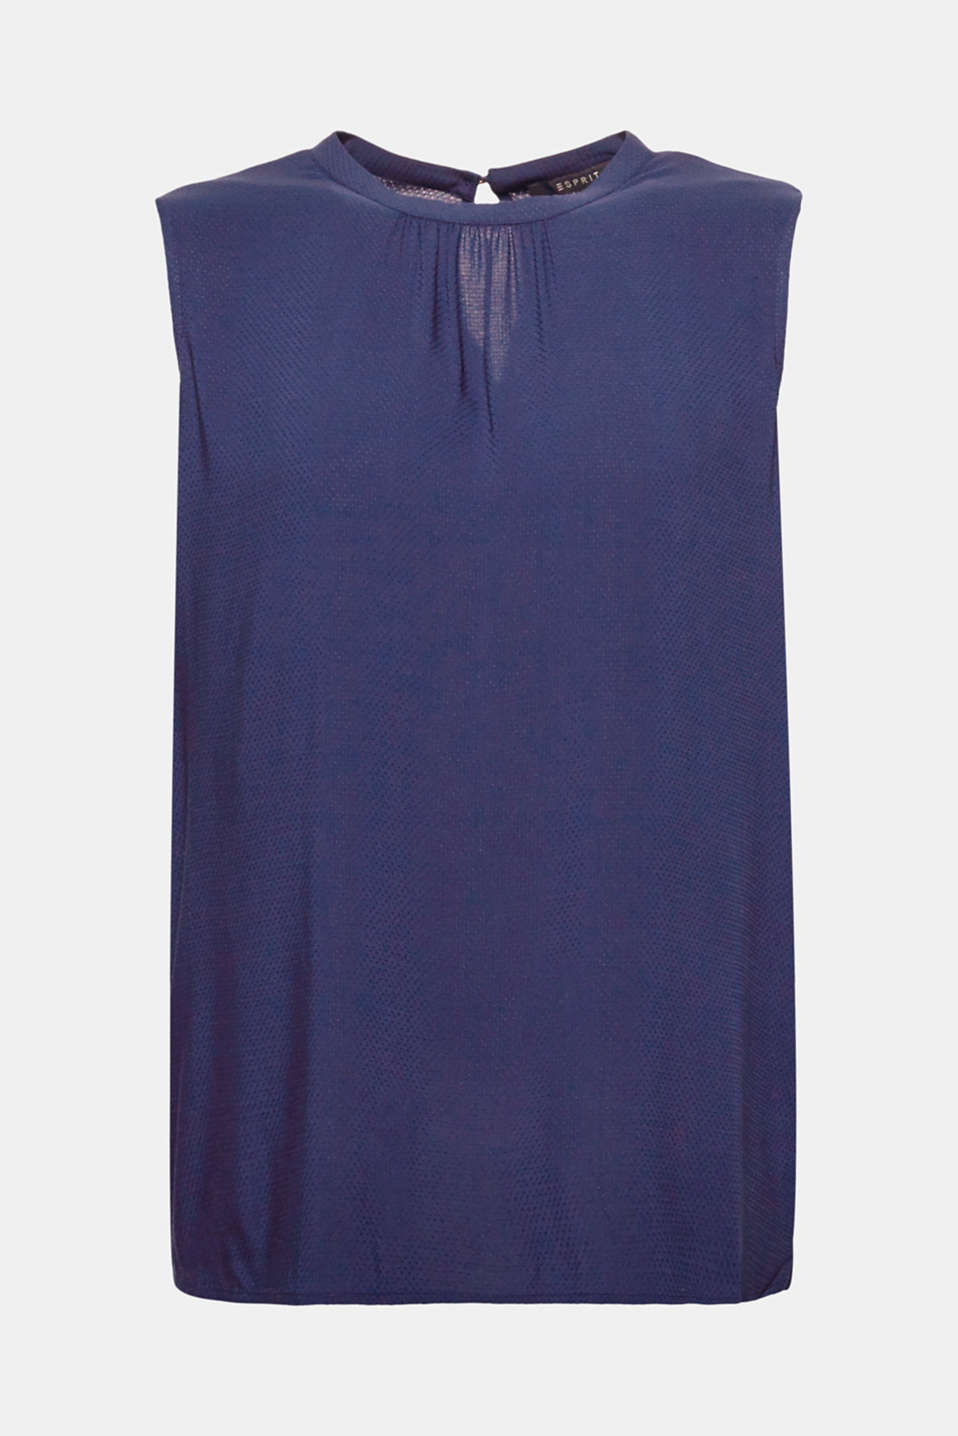 Flowing, delicate, feminine! This sleeveless blouse top is defined by its soft texture and subtly pleated round neckline.